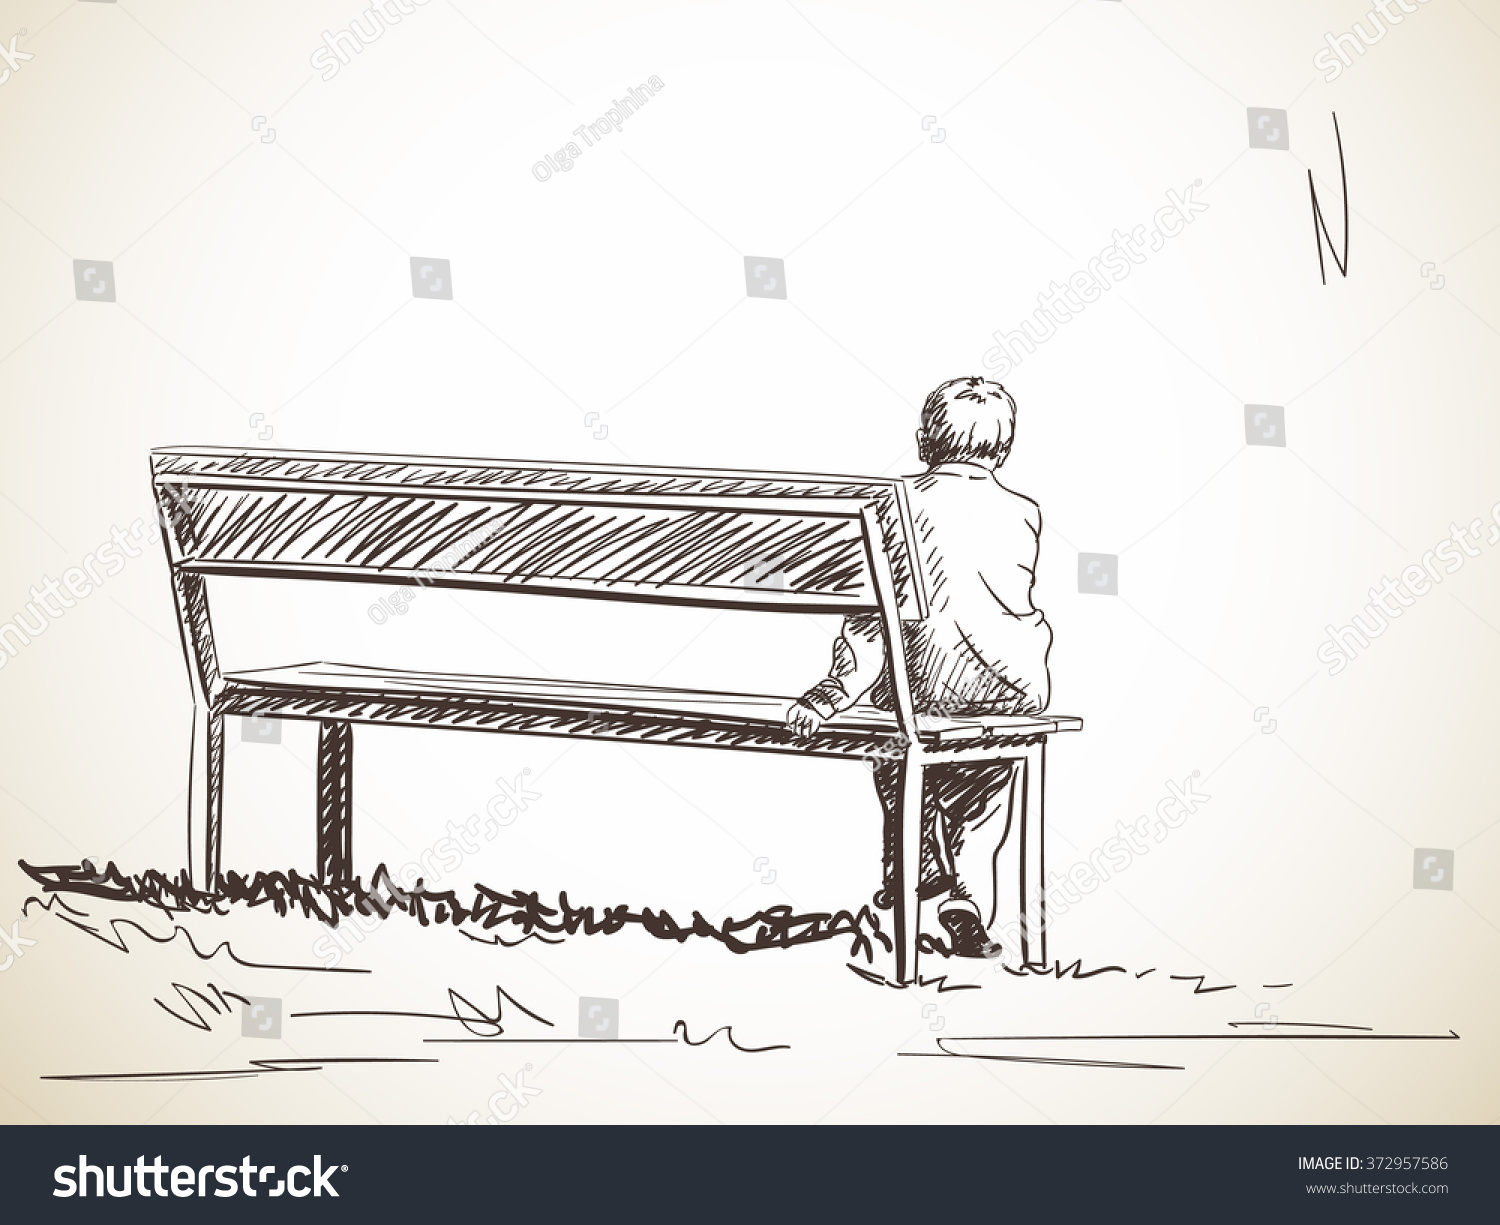 Lonely boy sitting on bench hand drawn sketch